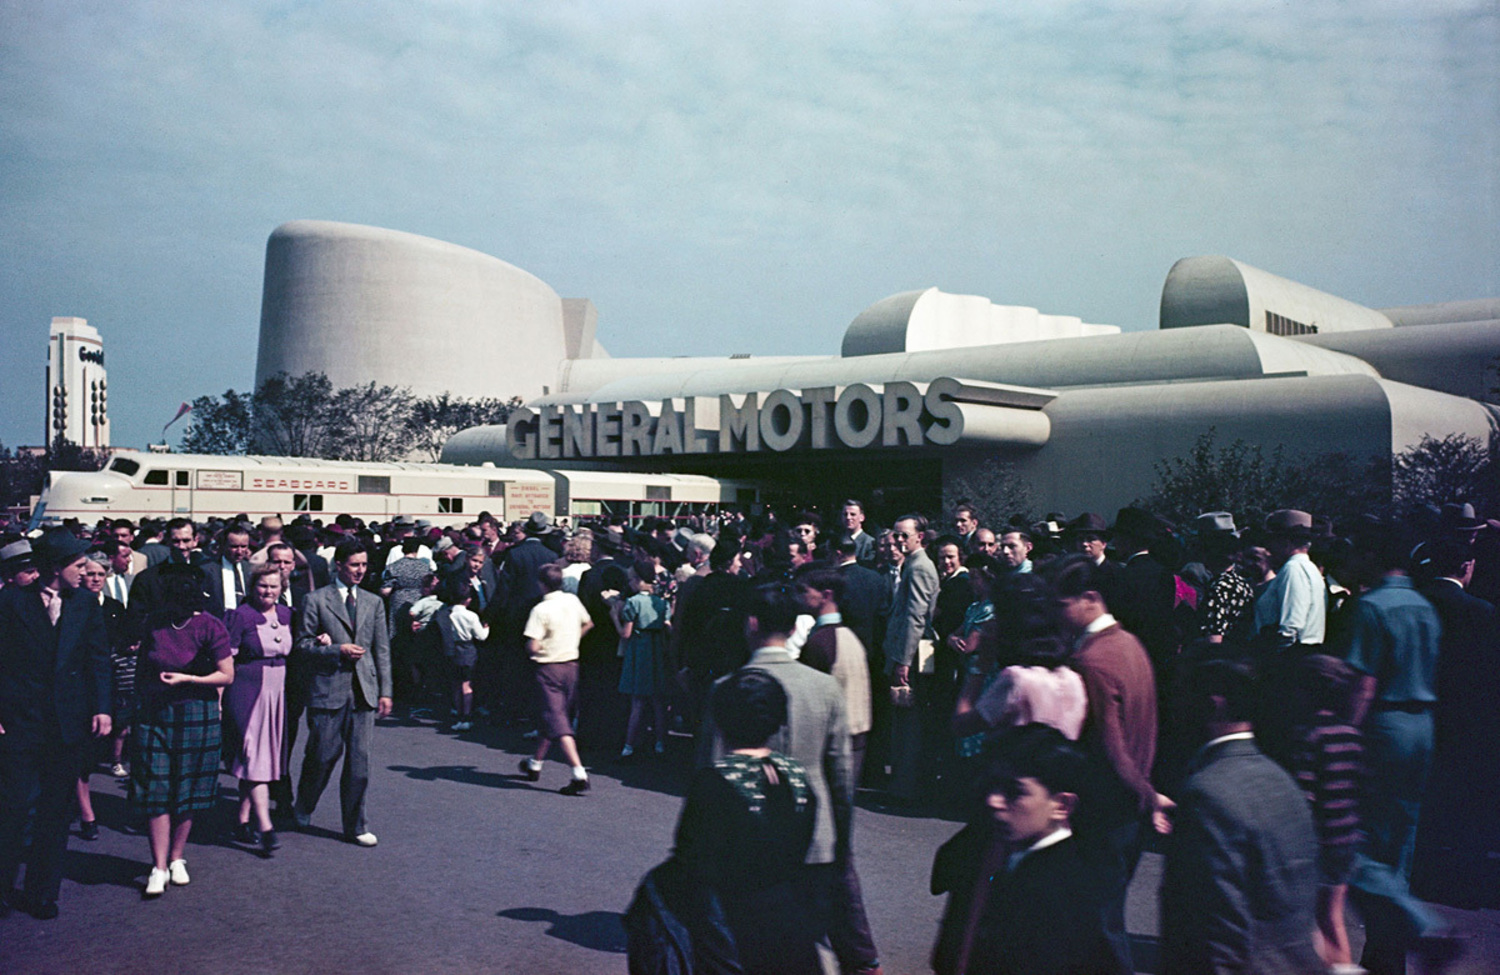 A large crowd in front of the General Motors Pavilion.